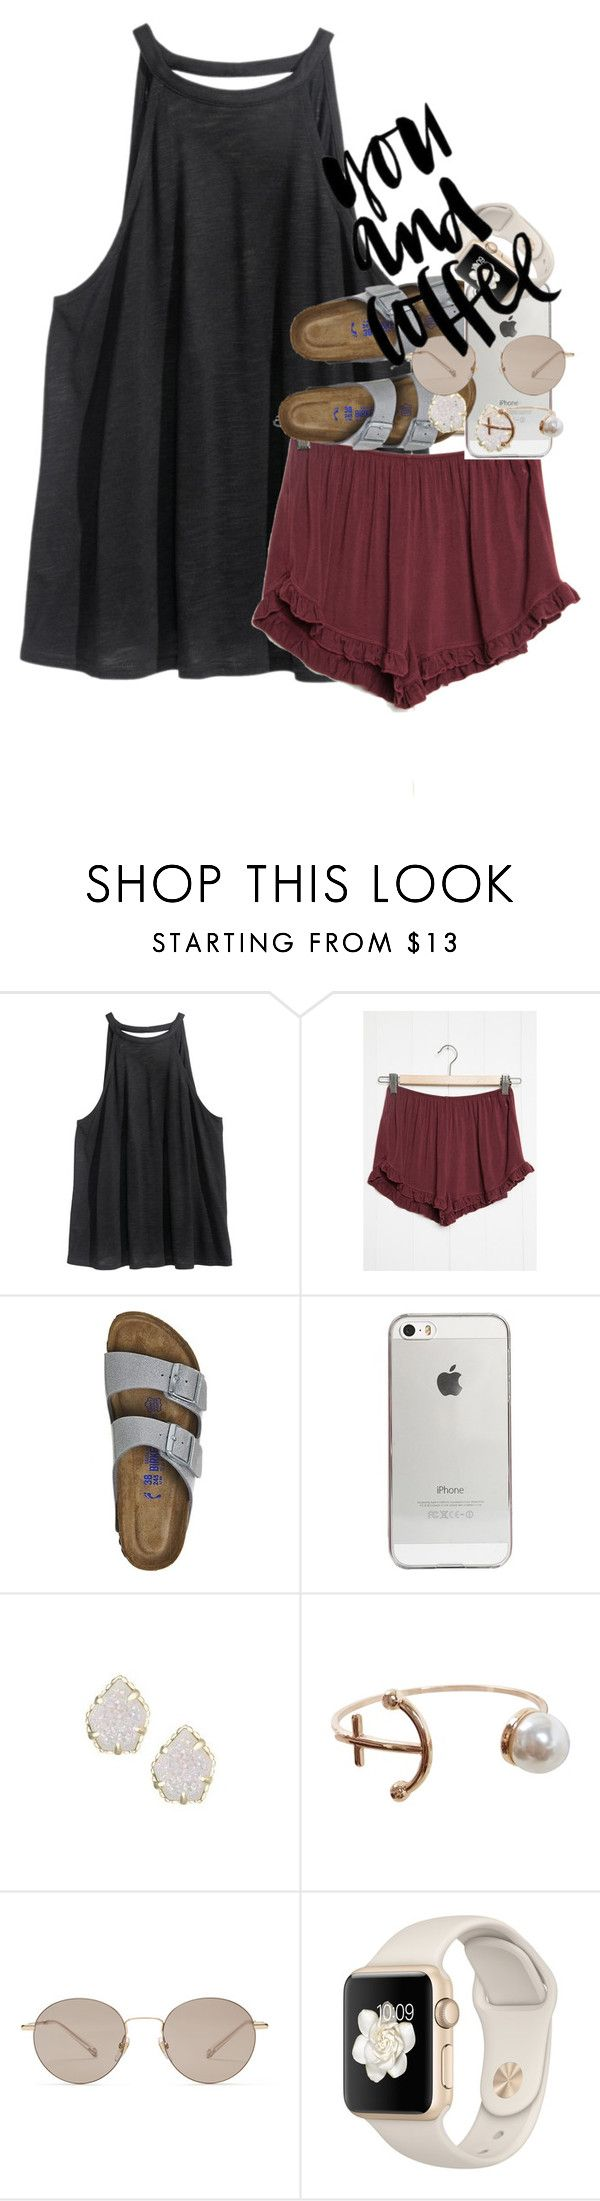 """""""don't chase a guy, let him chase you."""" by ellaswiftie13 ❤ liked on Polyvore featuring H&M, Birkenstock, Agent 18, Kendra Scott, Humble Chic and Gucci"""